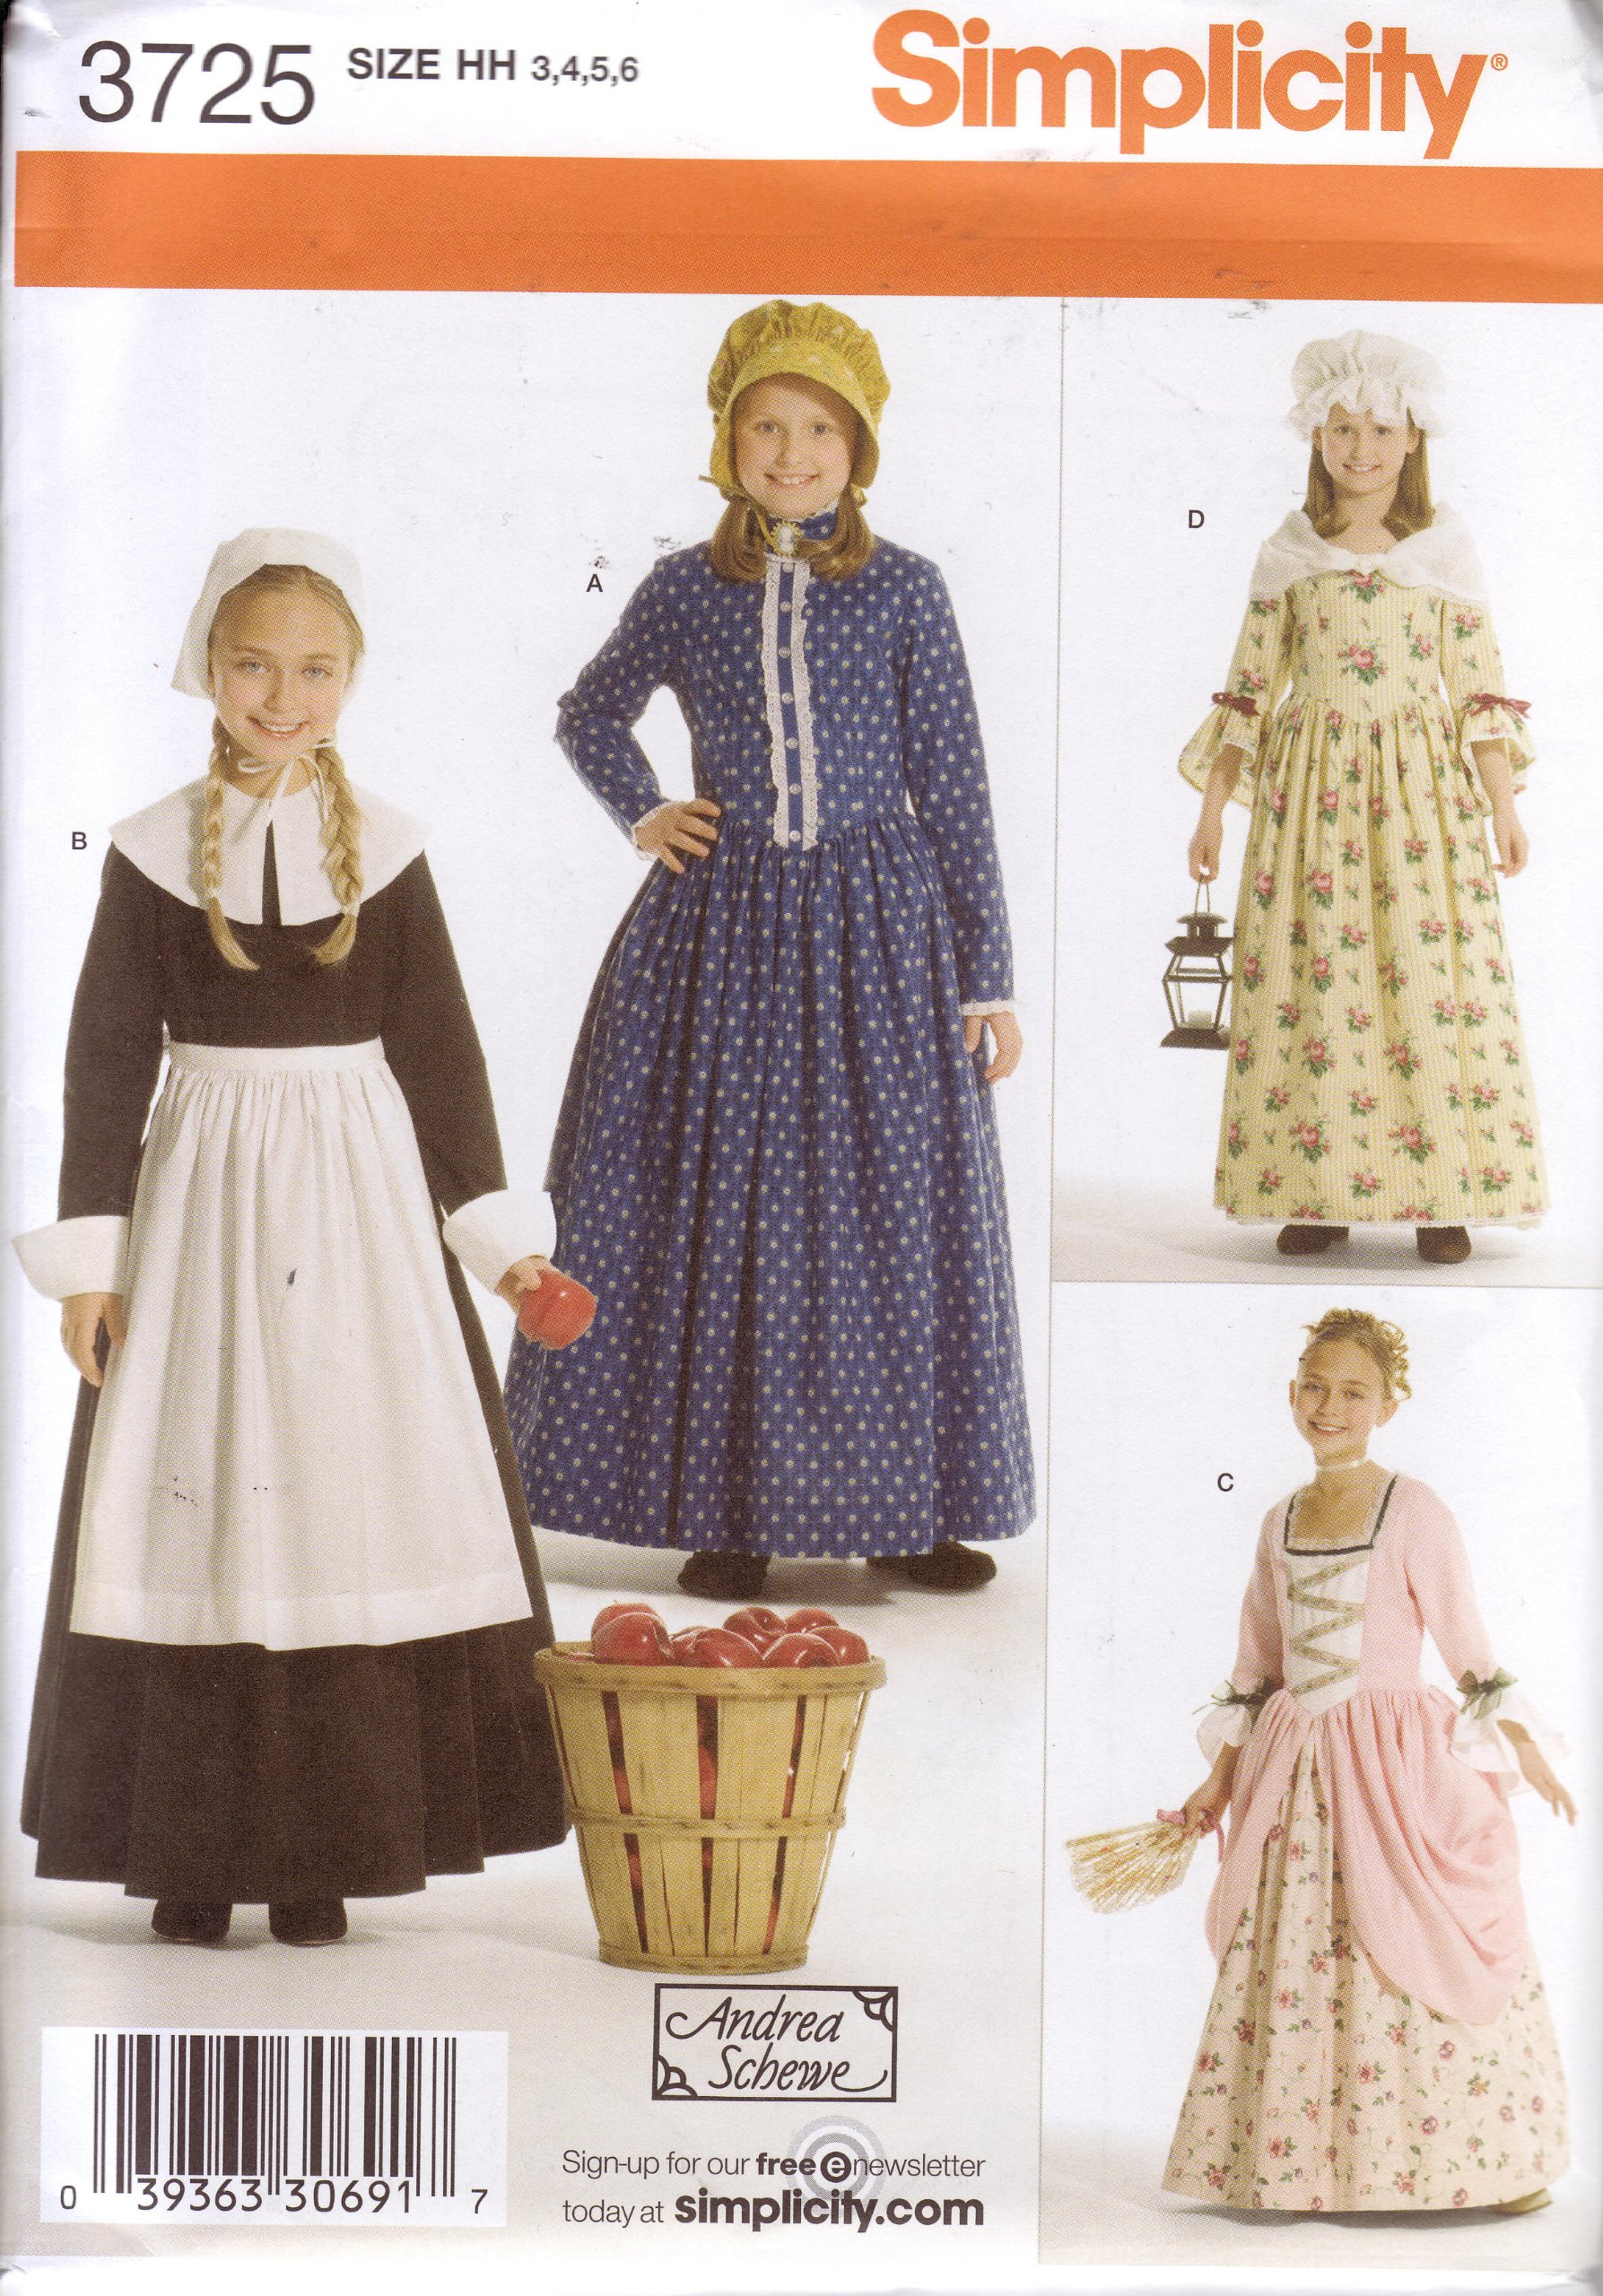 Simplicity Patterns Costumes Cool Decorating Ideas